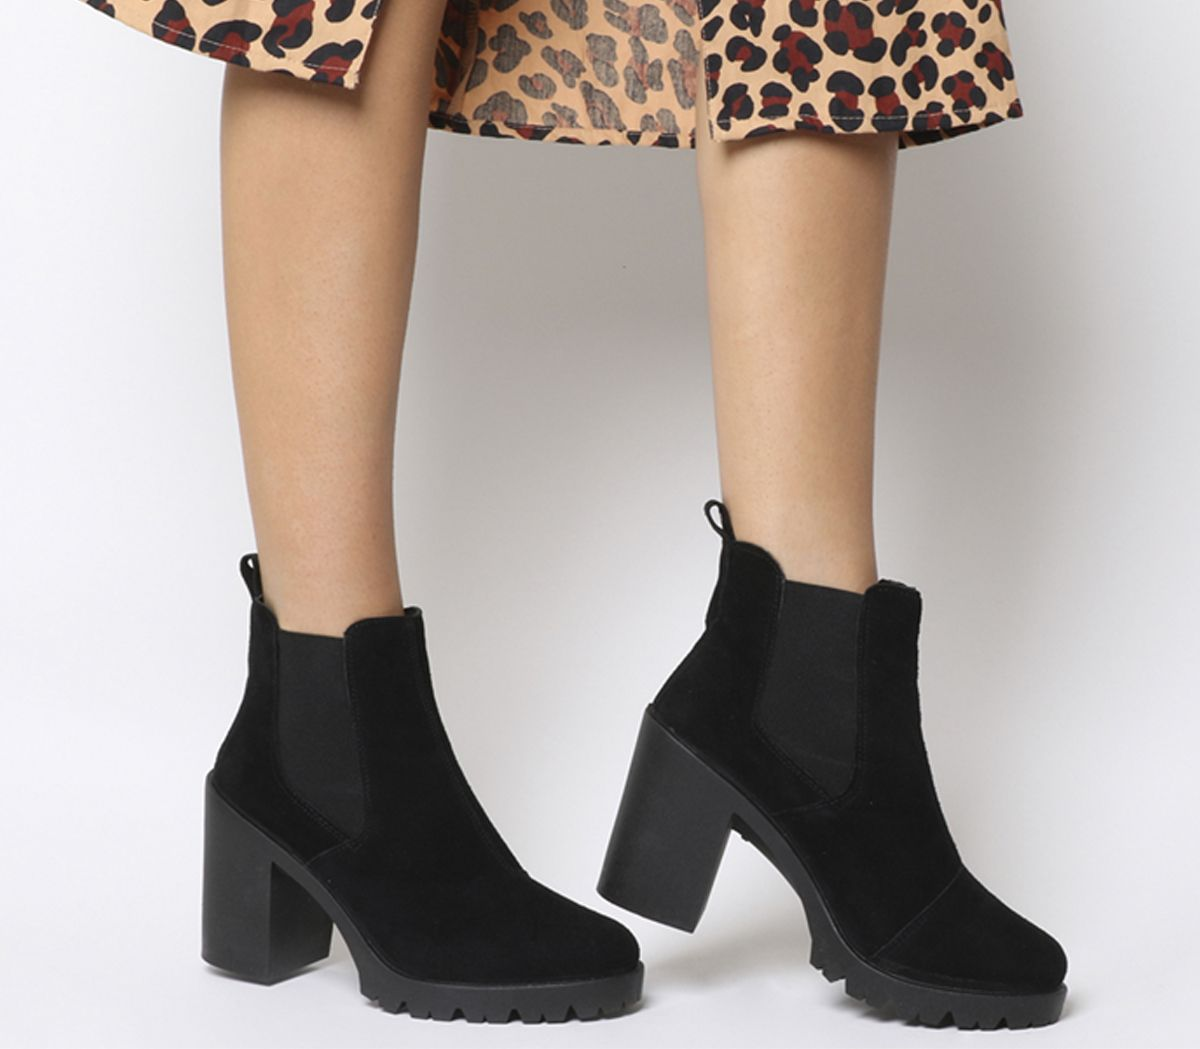 Chelsea boots, Black suede ankle boots